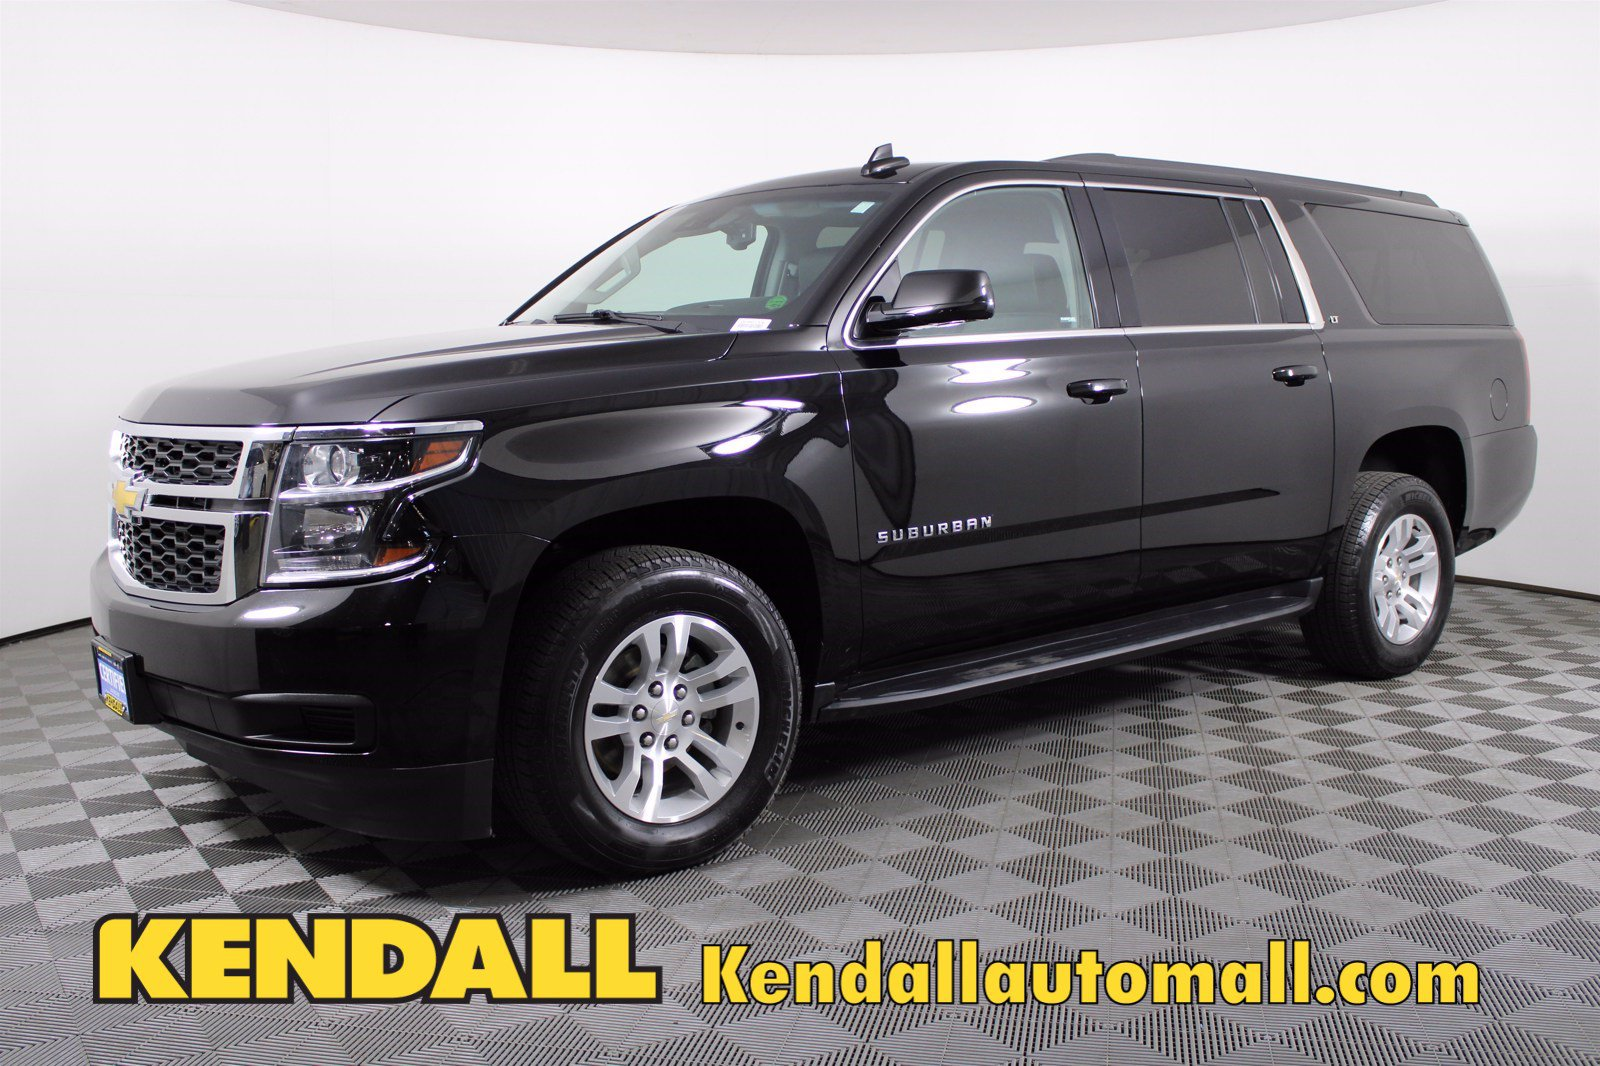 Certified Pre-Owned 2019 Chevrolet Suburban LT4WD